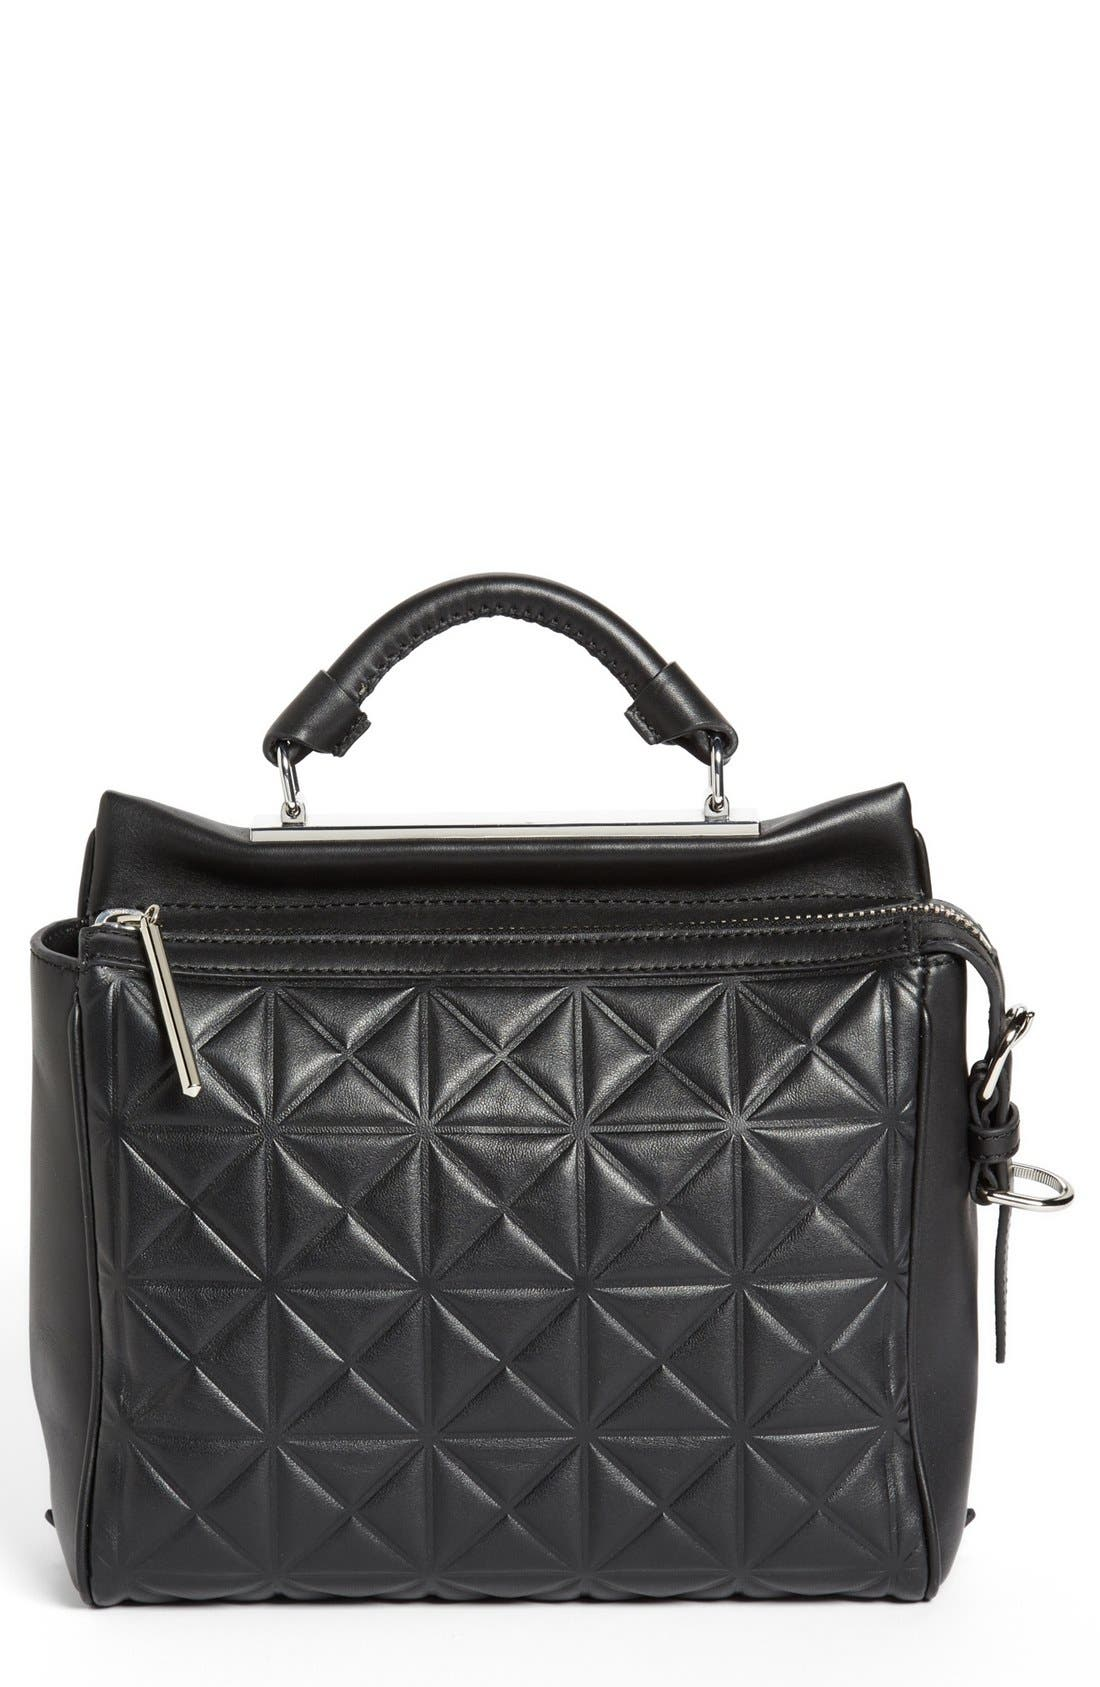 Alternate Image 1 Selected - 3.1 Phillip Lim 'Small Ryder' Satchel